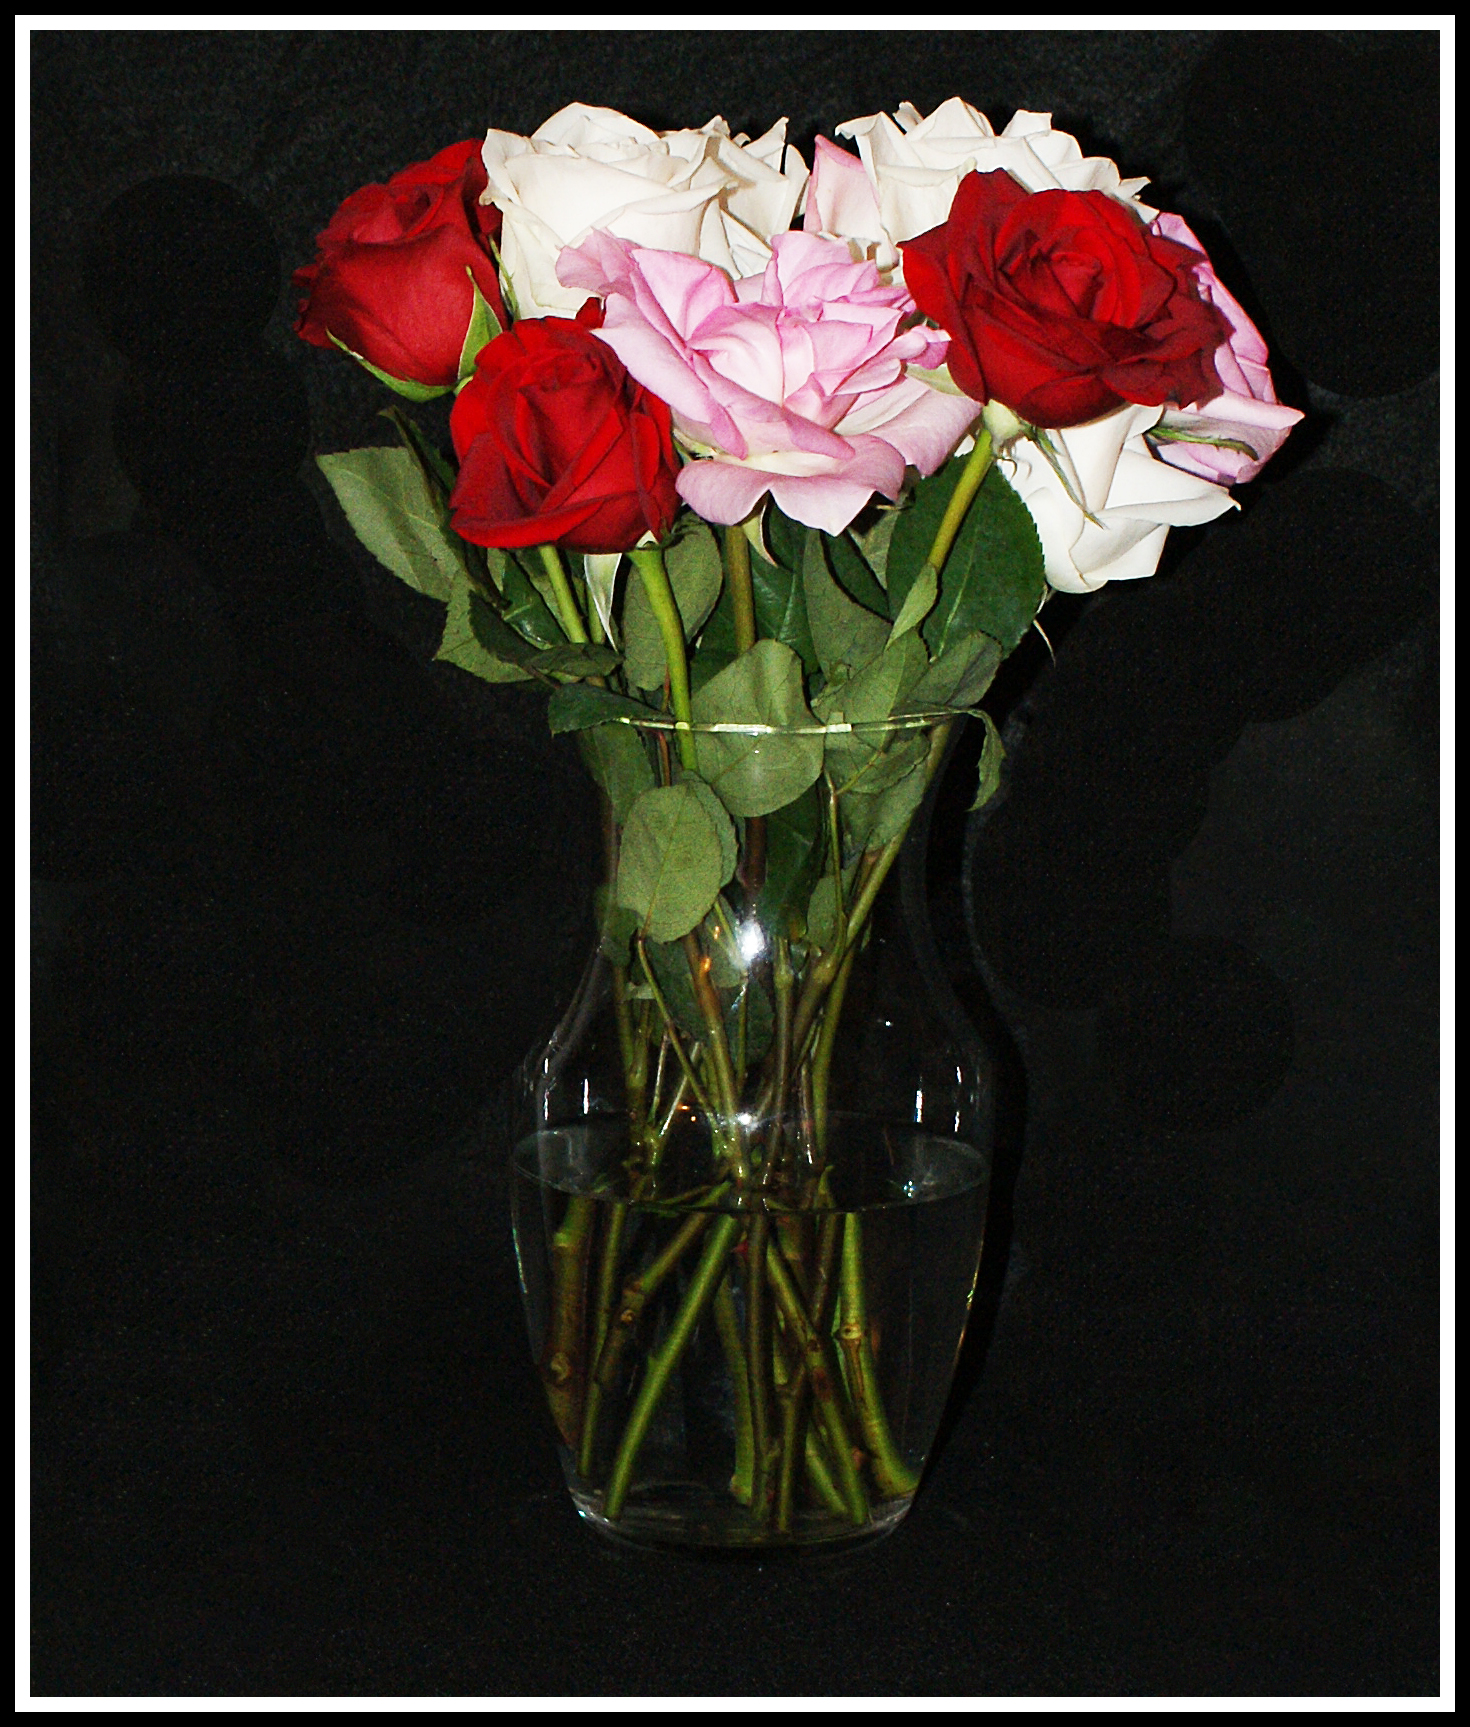 Meaning of Roses